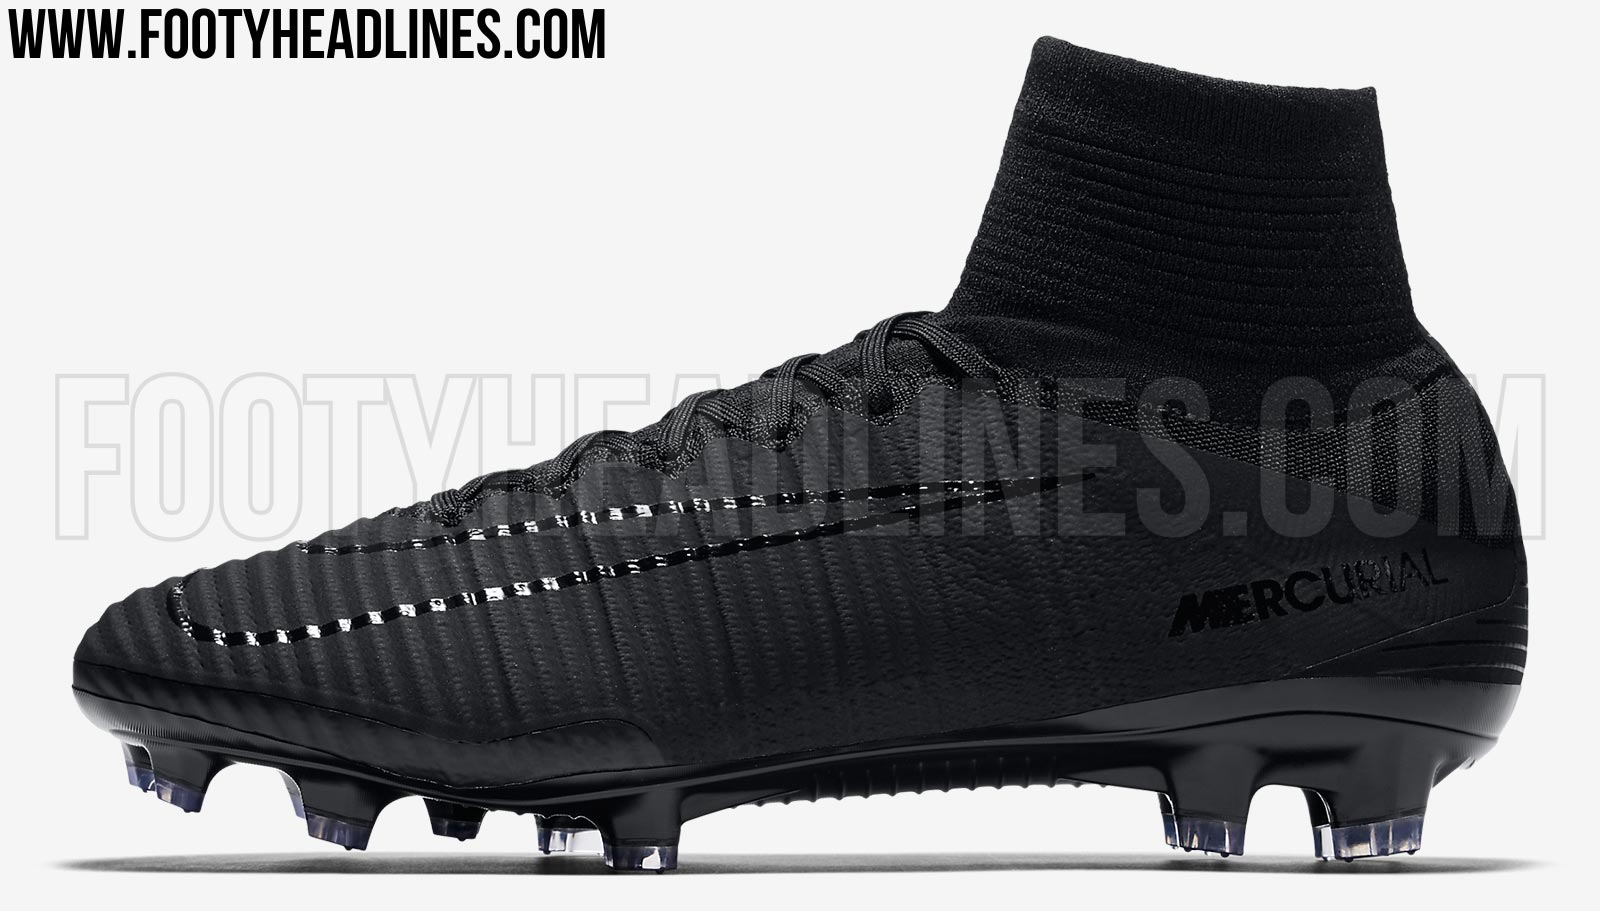 this image shows the all black nike mercurial superfly 5